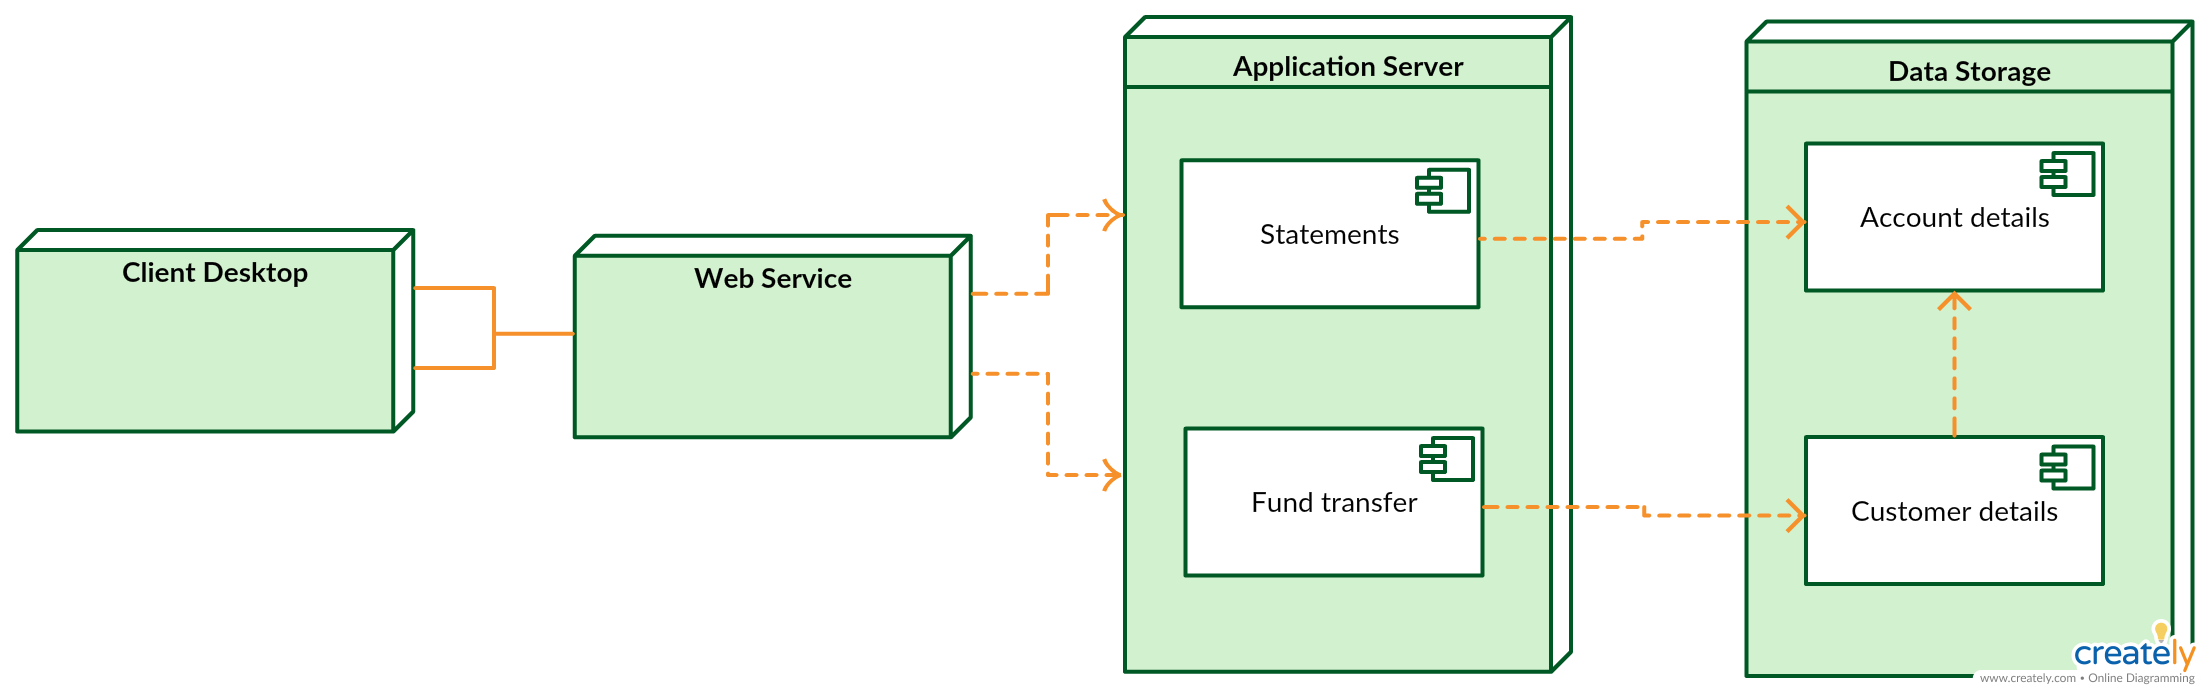 medium resolution of deployment diagram for online banking transaction system this diagram illustrates the deployment diagram template for online bank transaction process